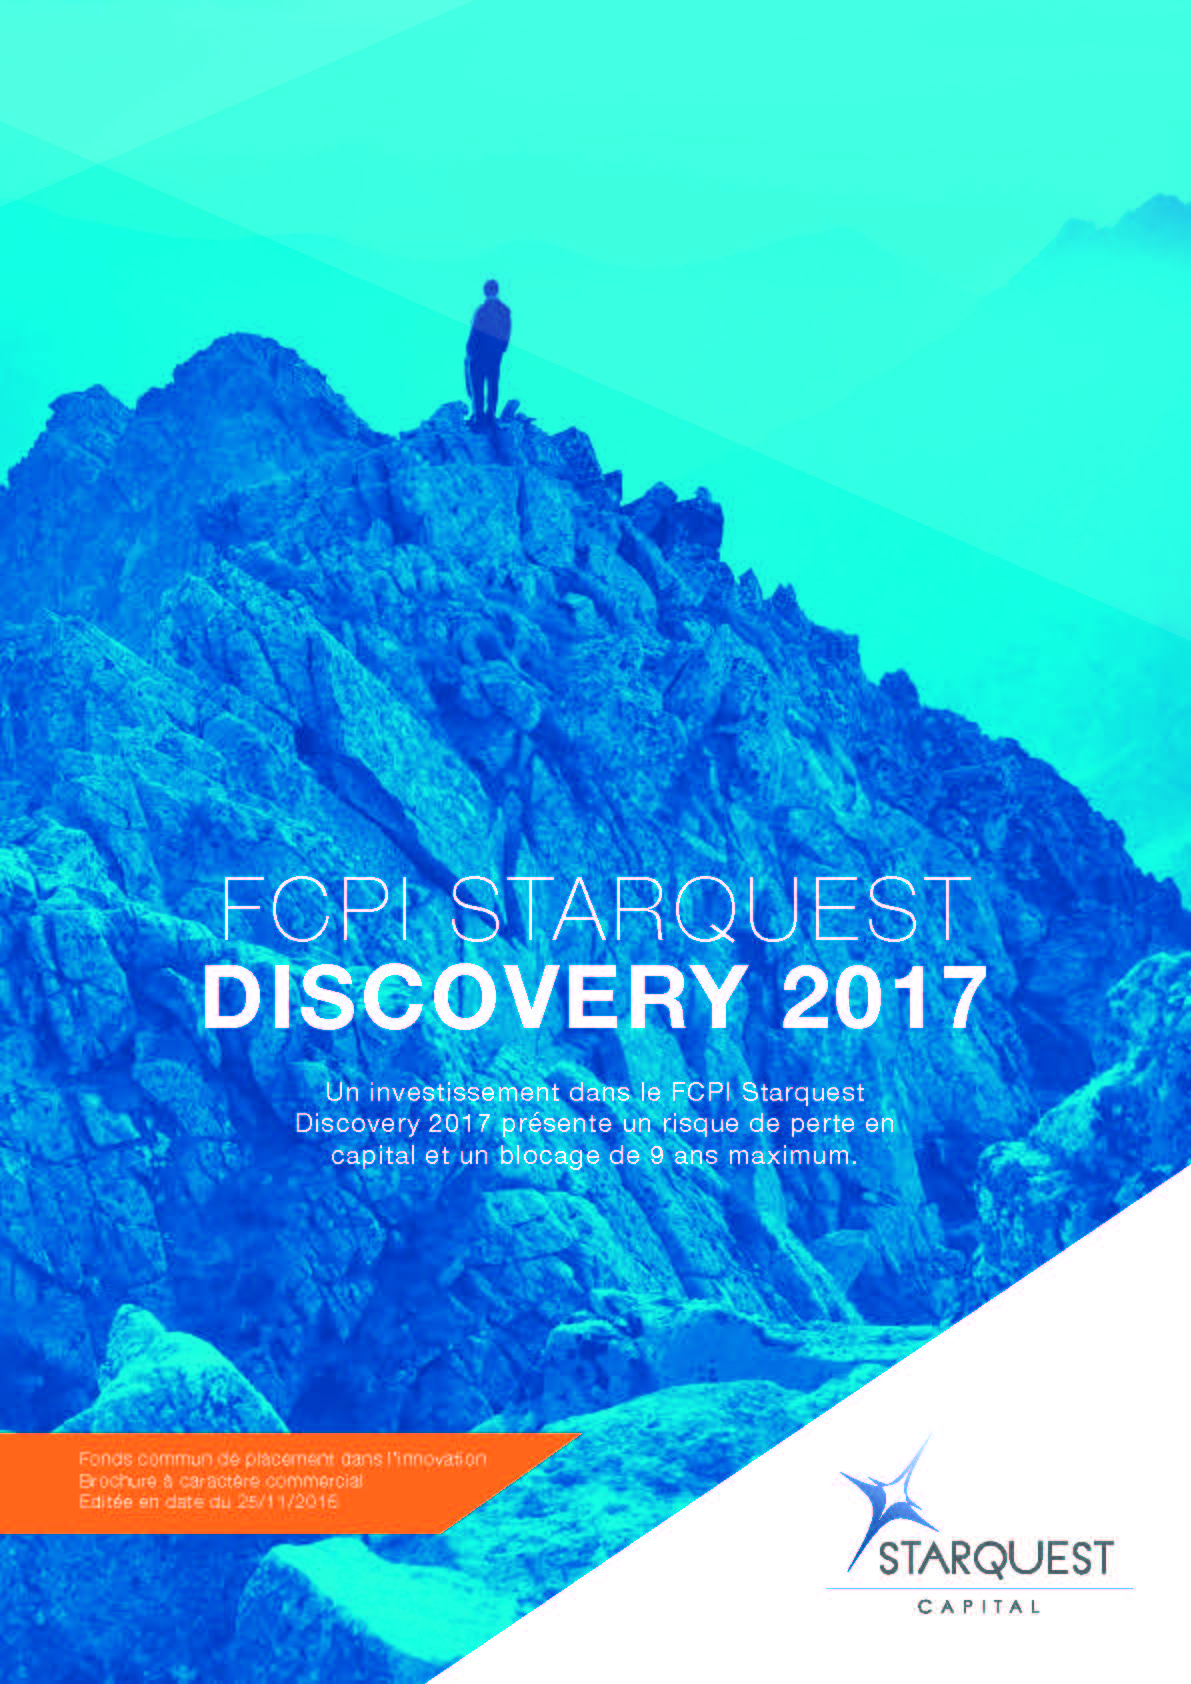 FCPI STARQUEST DISCOVERY 2017